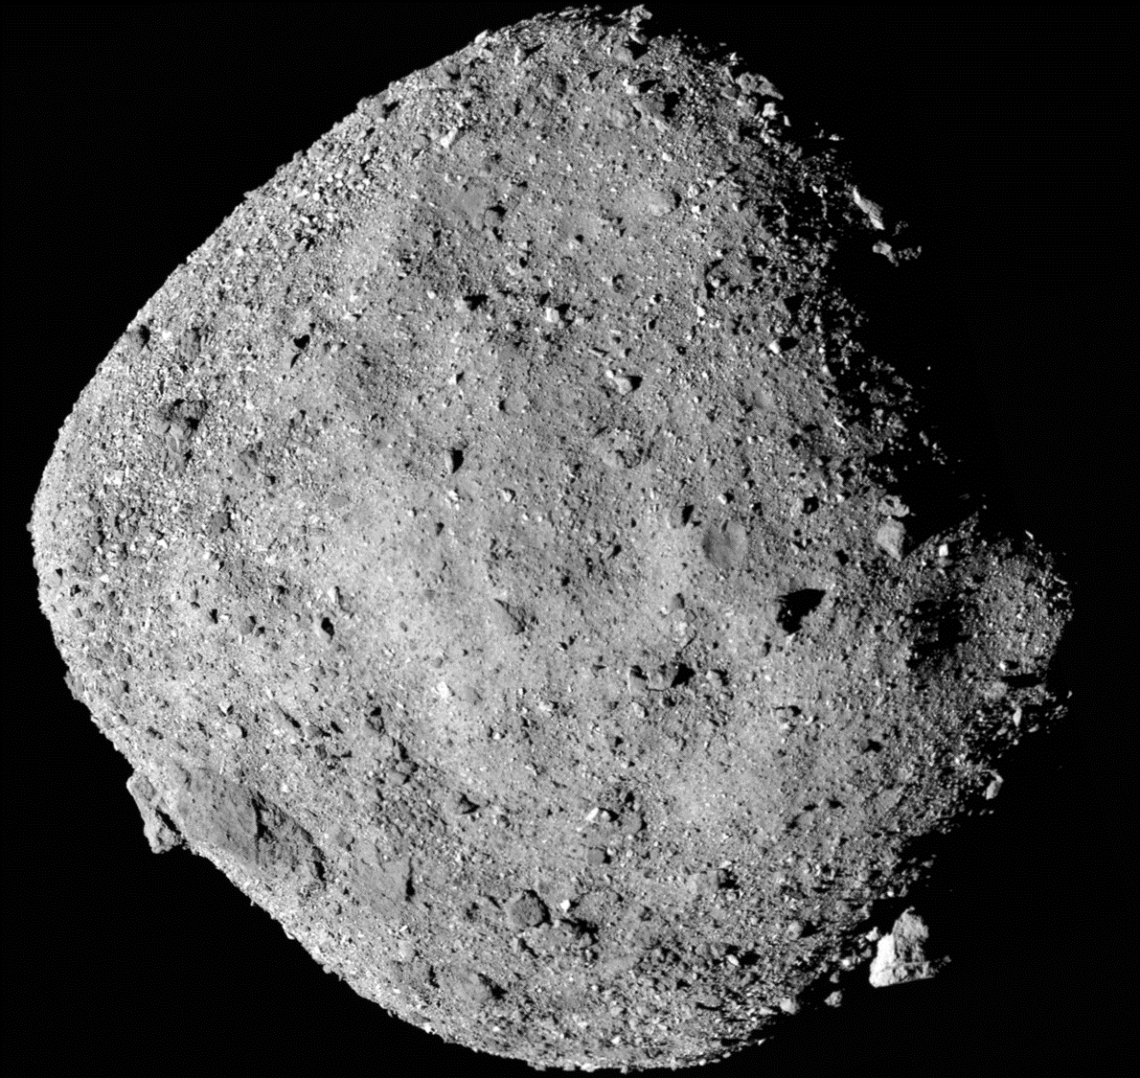 This mosaic image of asteroid Bennu is composed of 12 PolyCam images collected on Dec. 2 by the OSIRIS-REx spacecraft from a range of 15 miles .